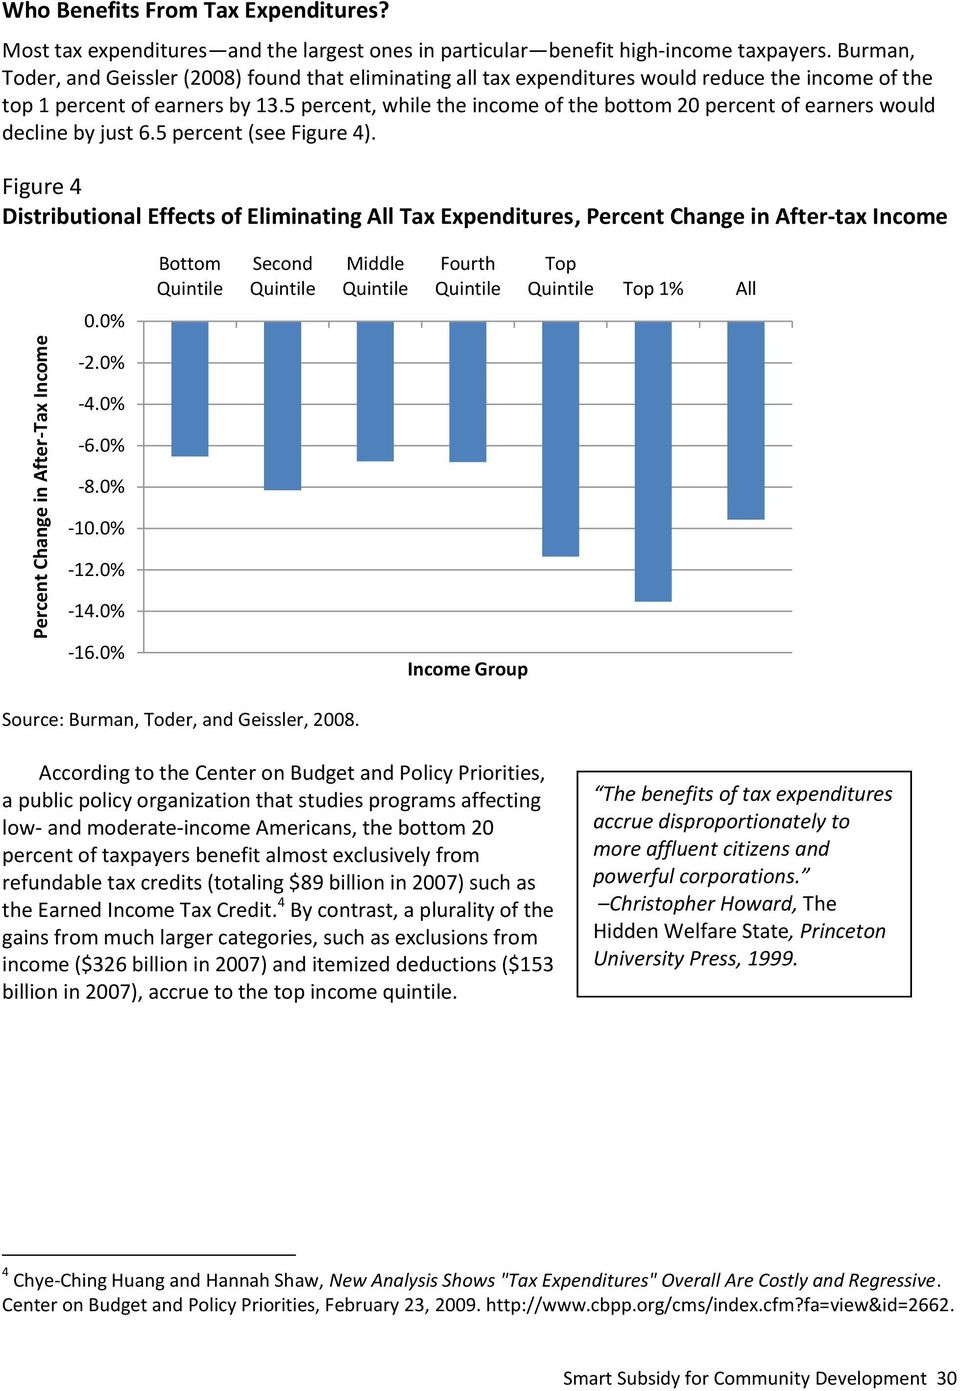 5 percent, while the income of the bottom 20 percent of earners would decline by just 6.5 percent (see Figure 4).